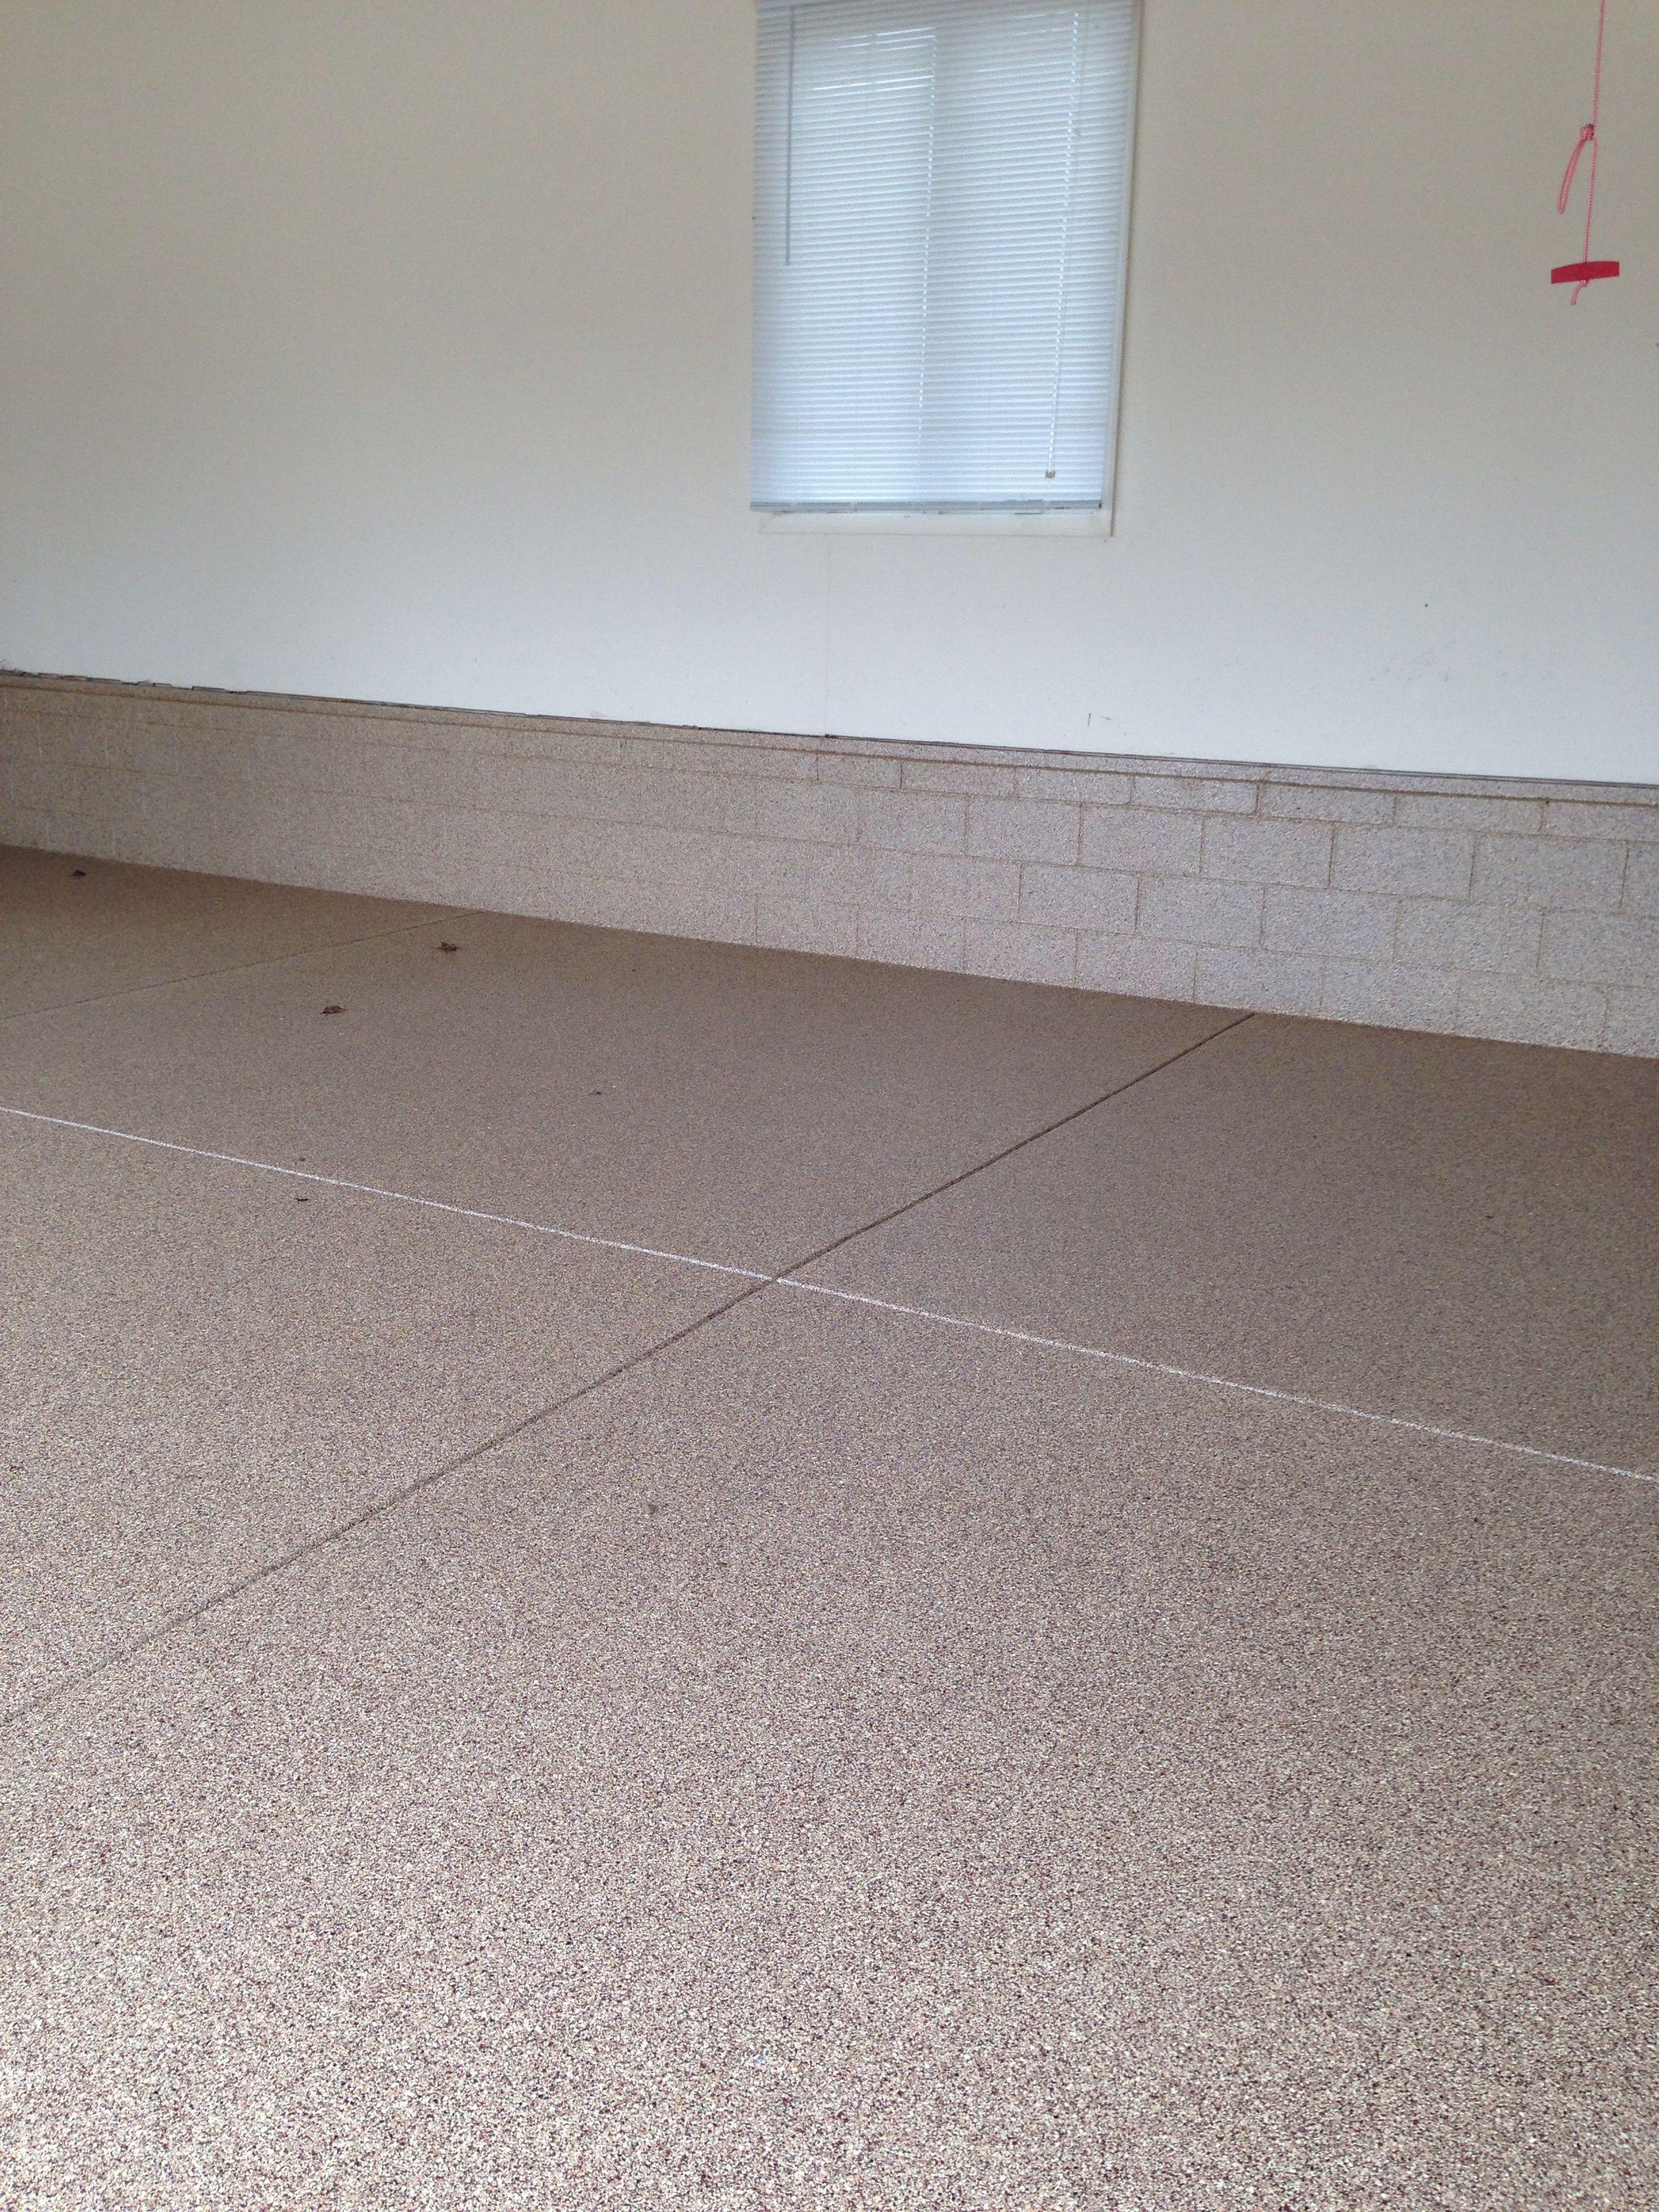 Floor and foundation in this Mullica Hill, NJ garage